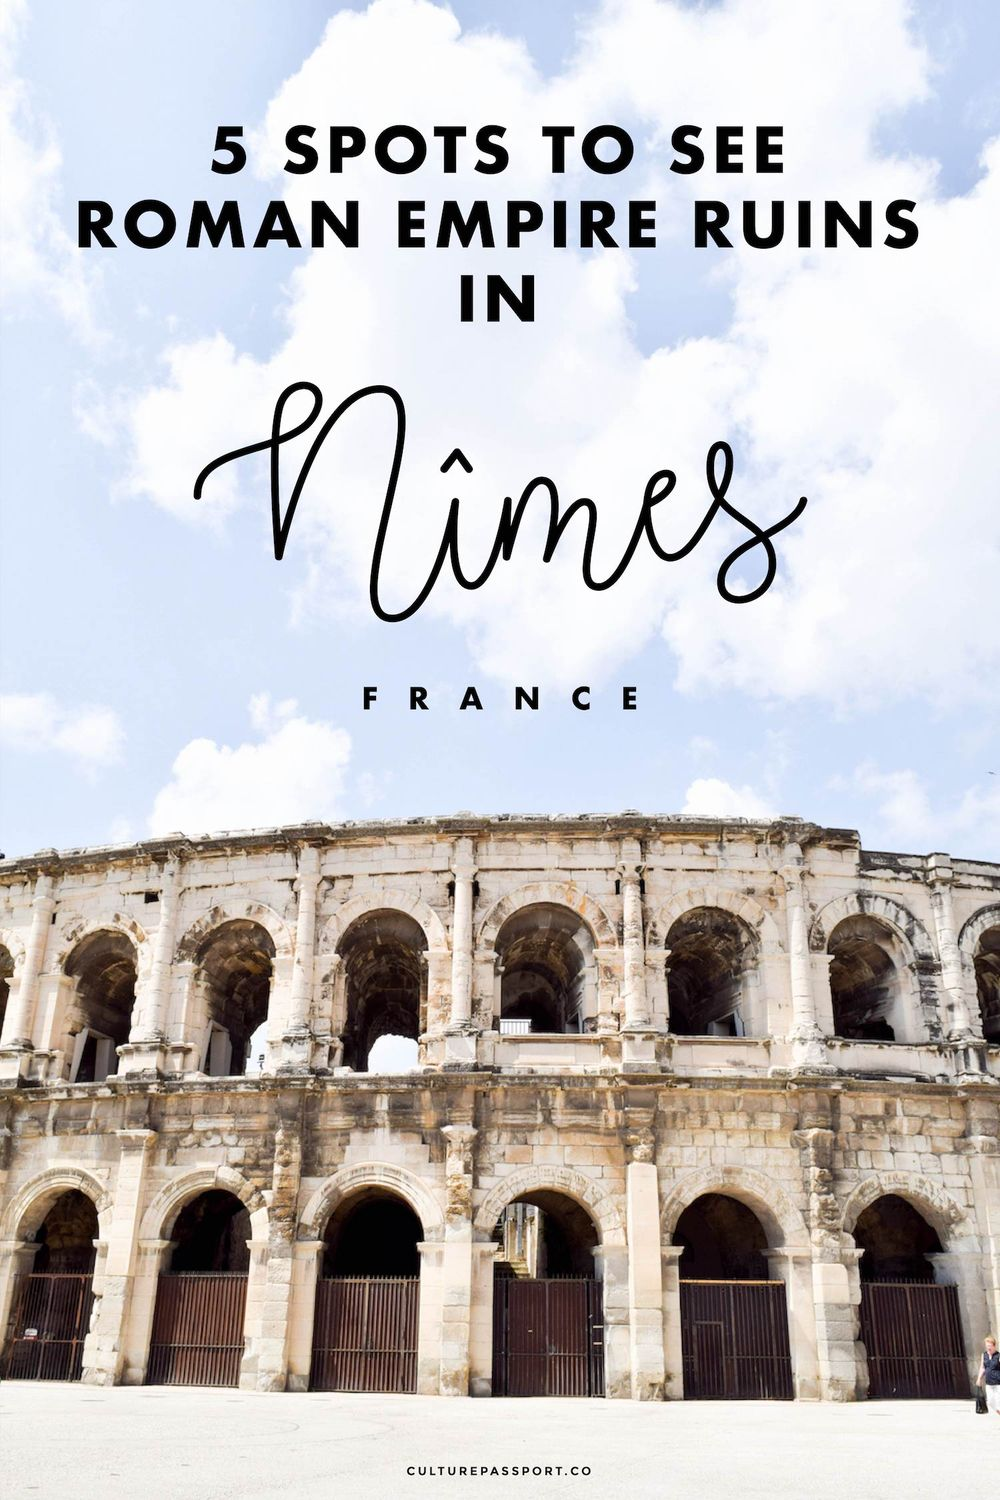 Roman Empire Ruins in Nîmes France #travelfrance